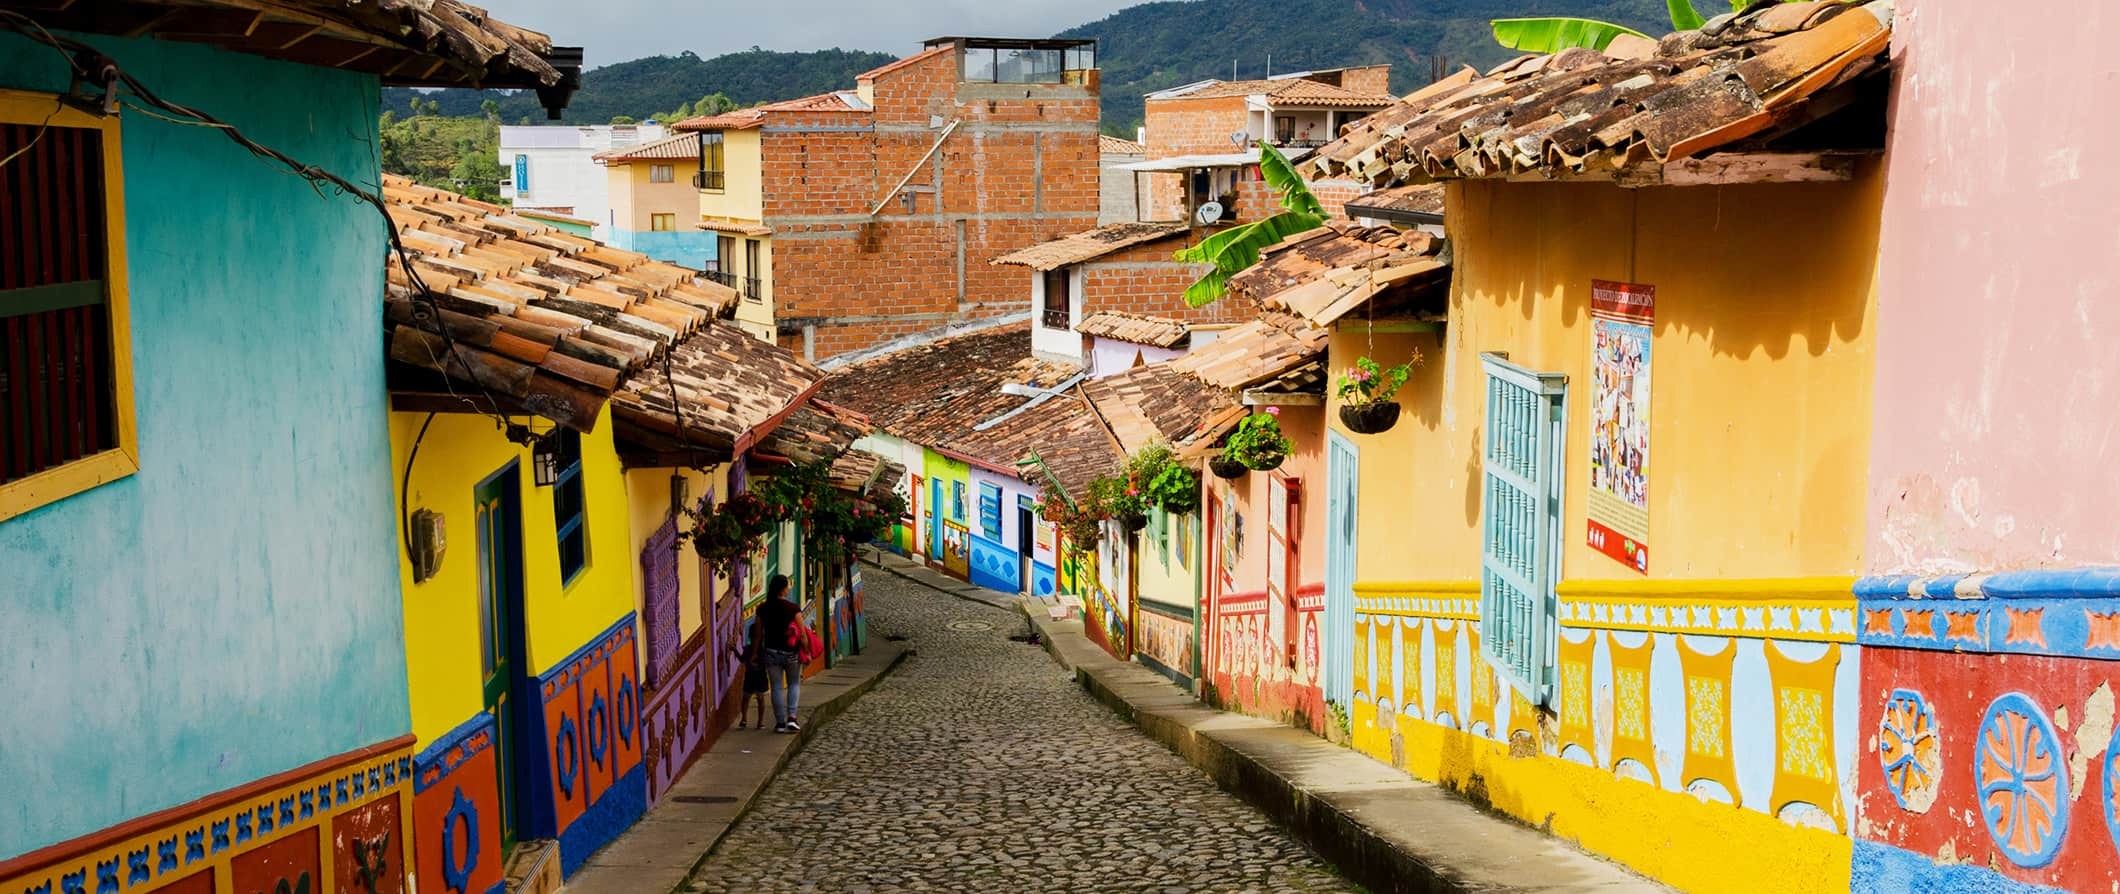 a colorful alleyway looking down a hill in Bogota, Colombia